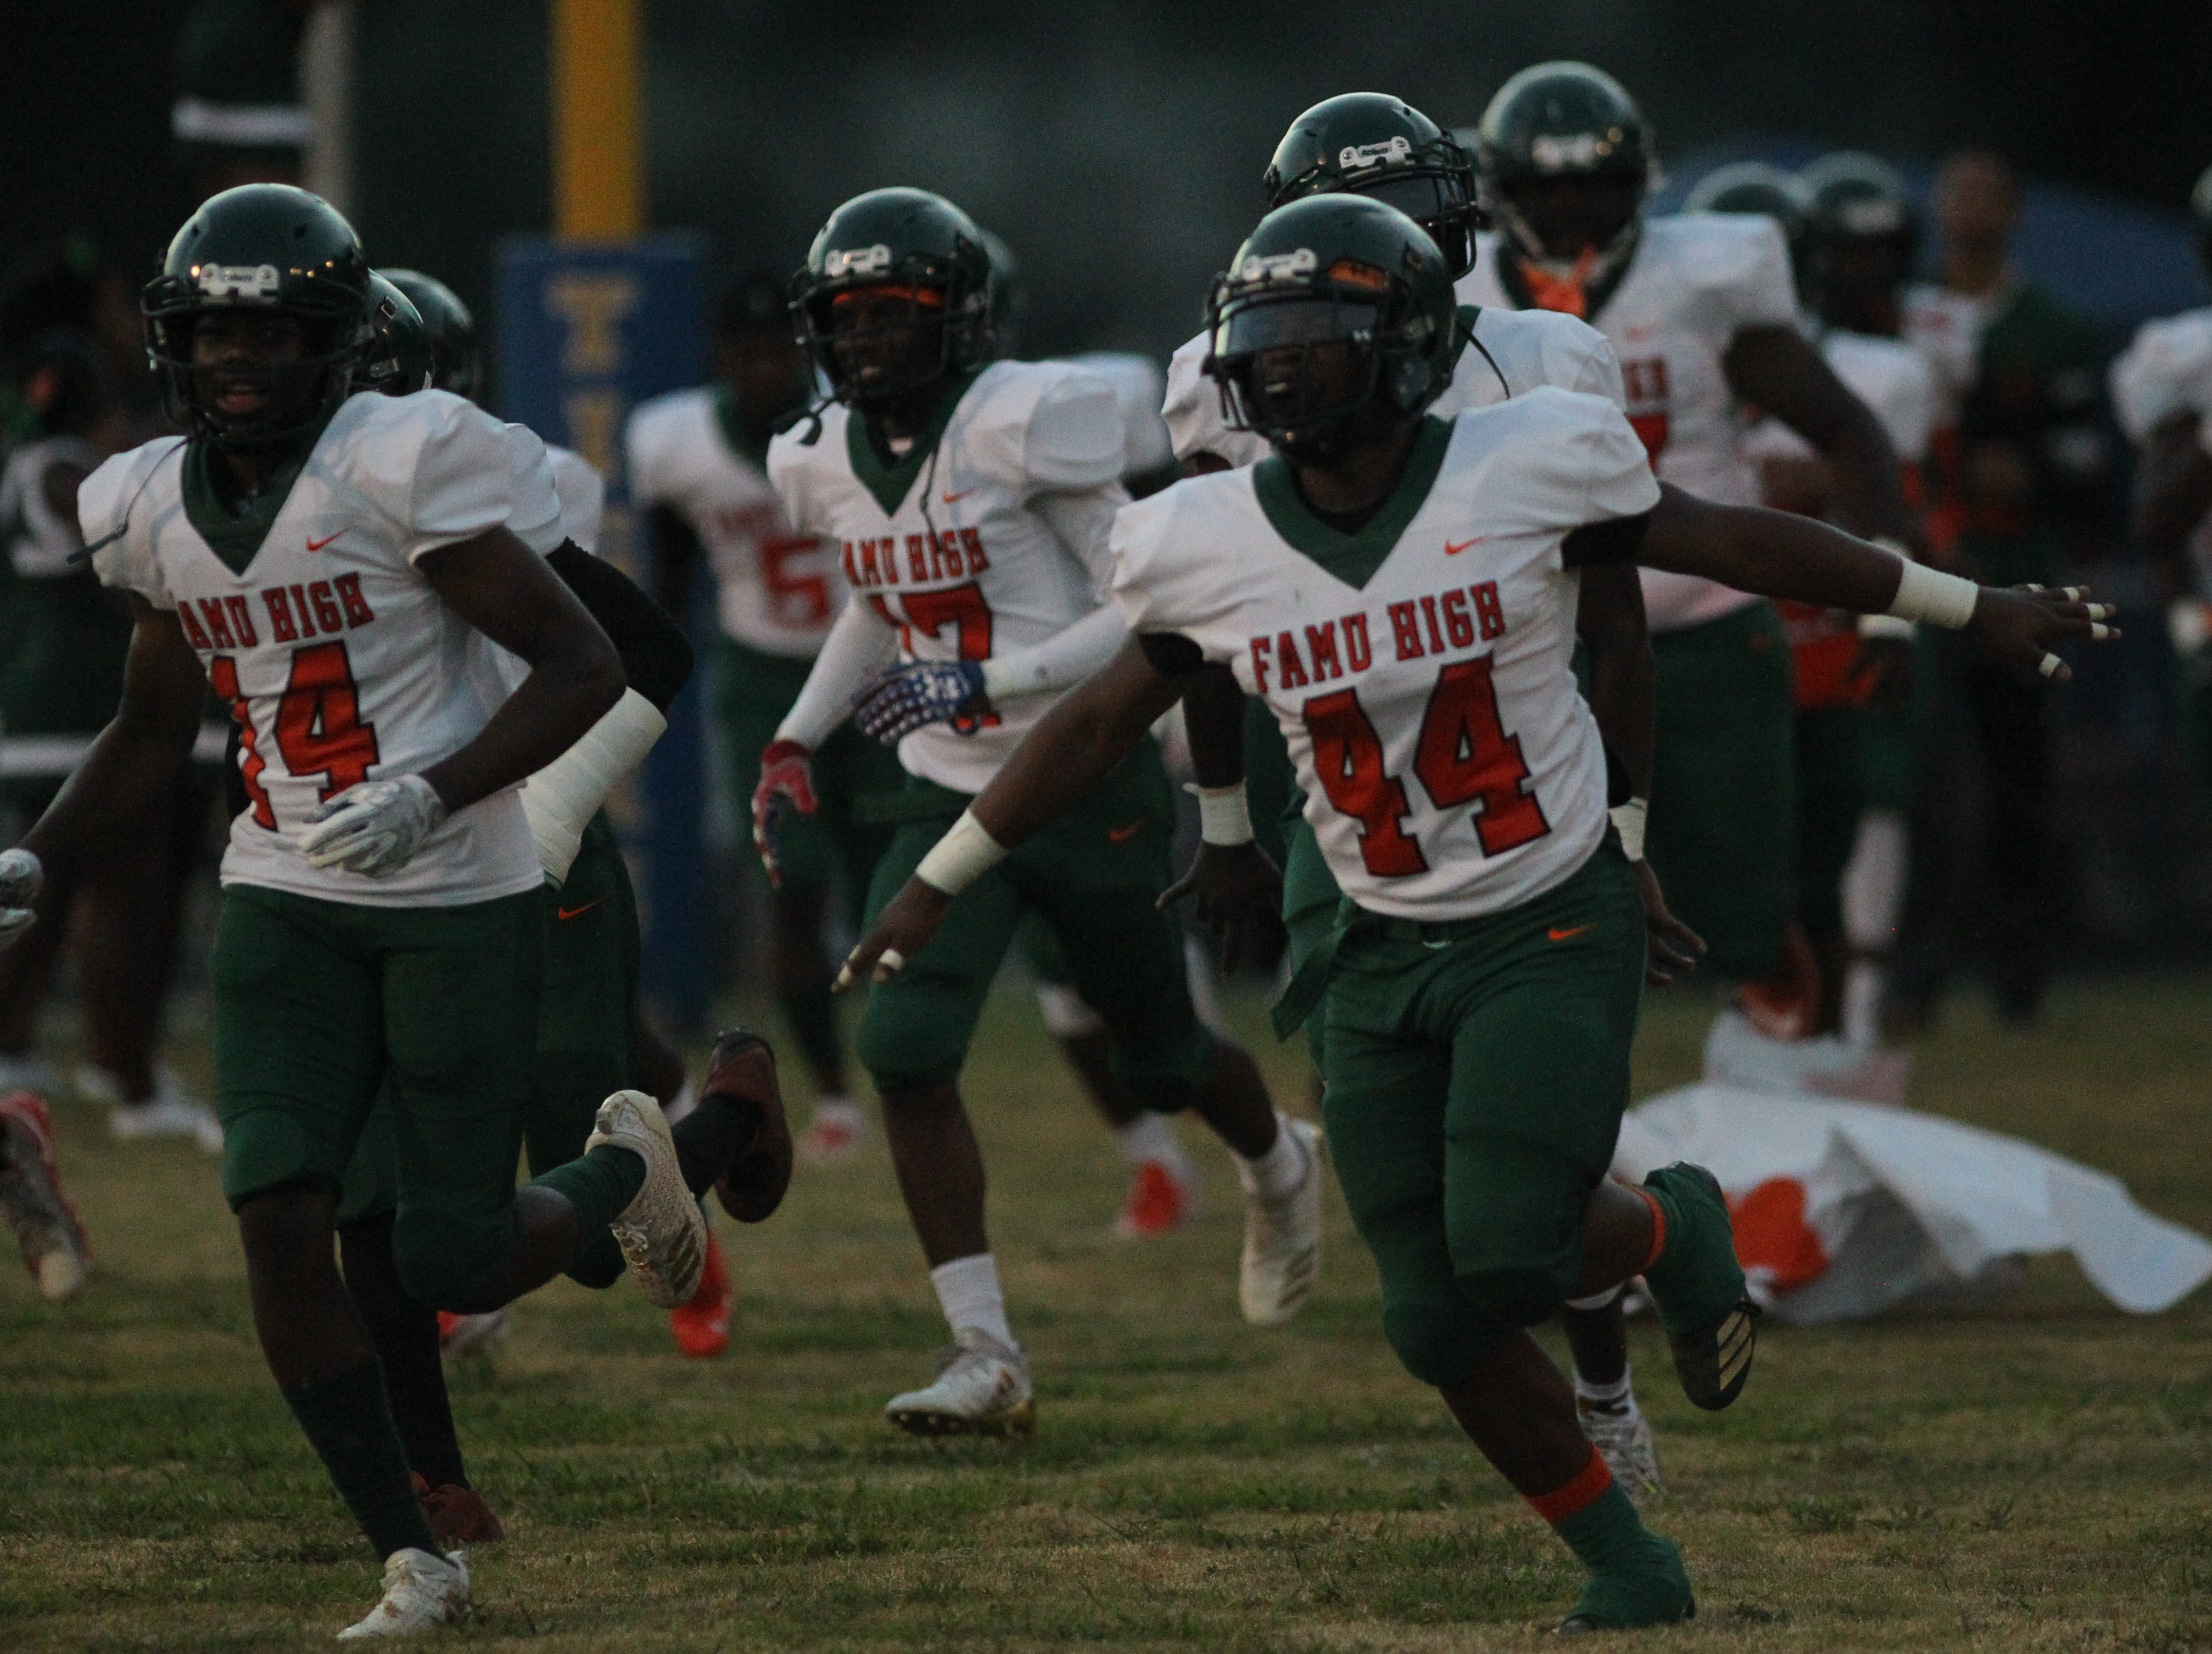 FAMU DRS plays at Jefferson County in a high school football game on Friday, Sept. 21, 2018.